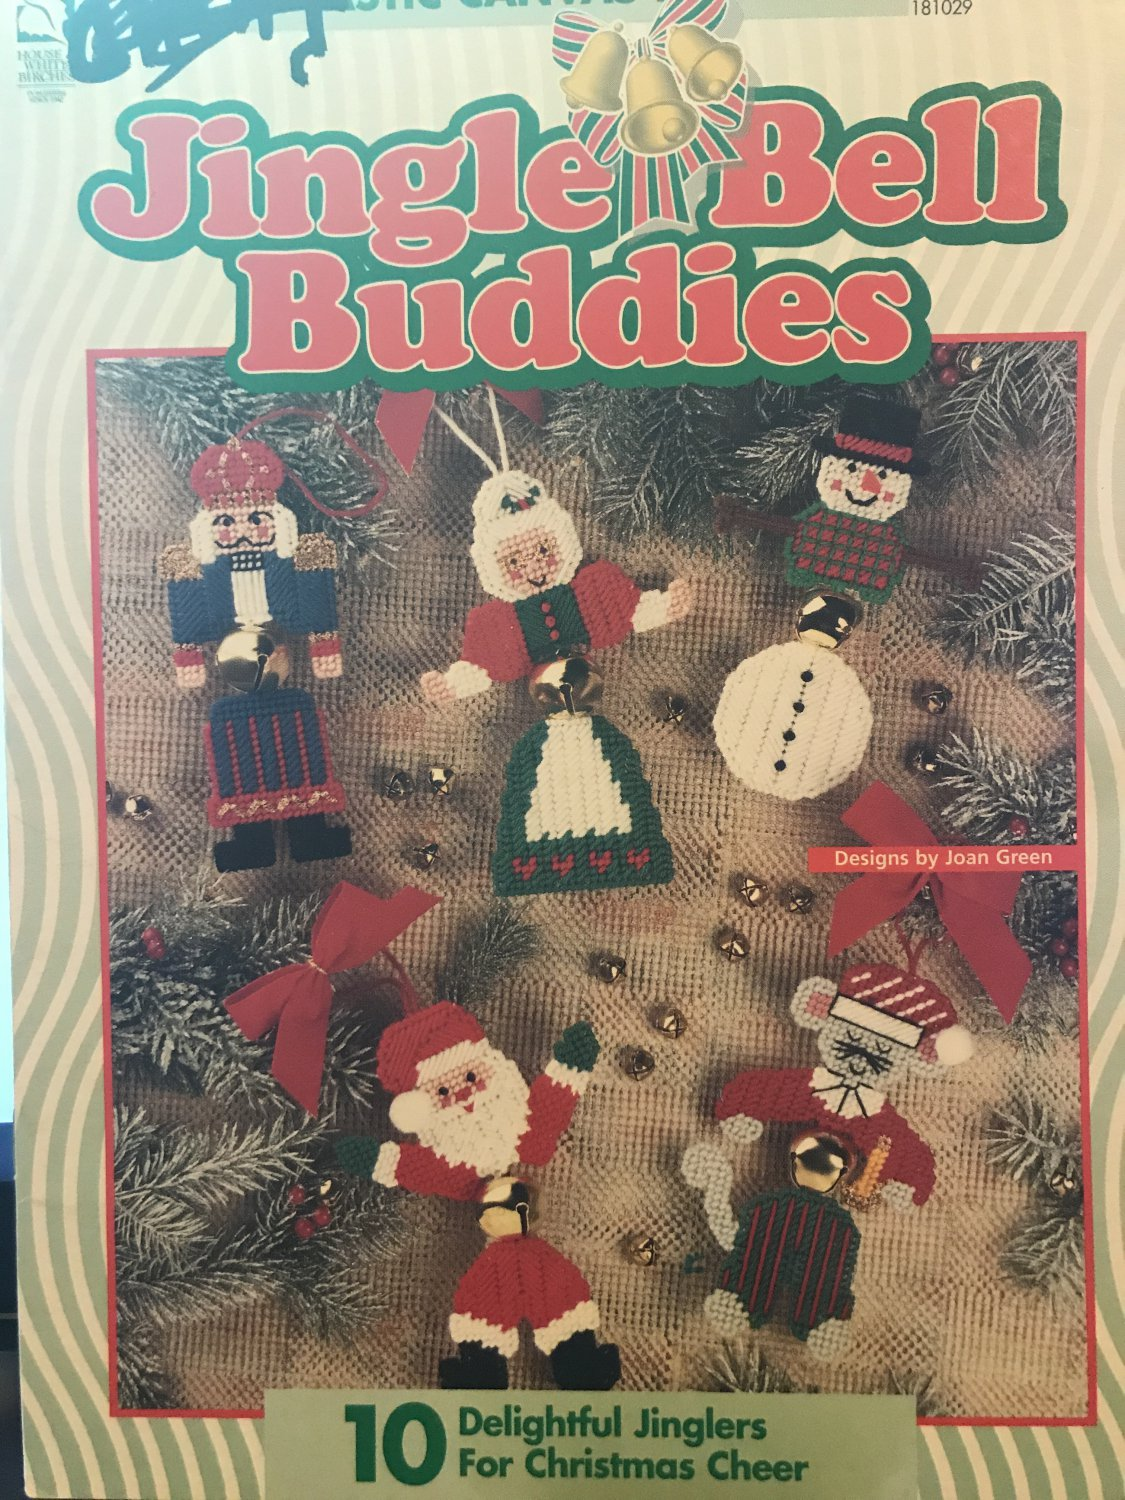 Jingle Bell Buddies Plastic Canvas Pattern 10 Designs House of White Birches 181029